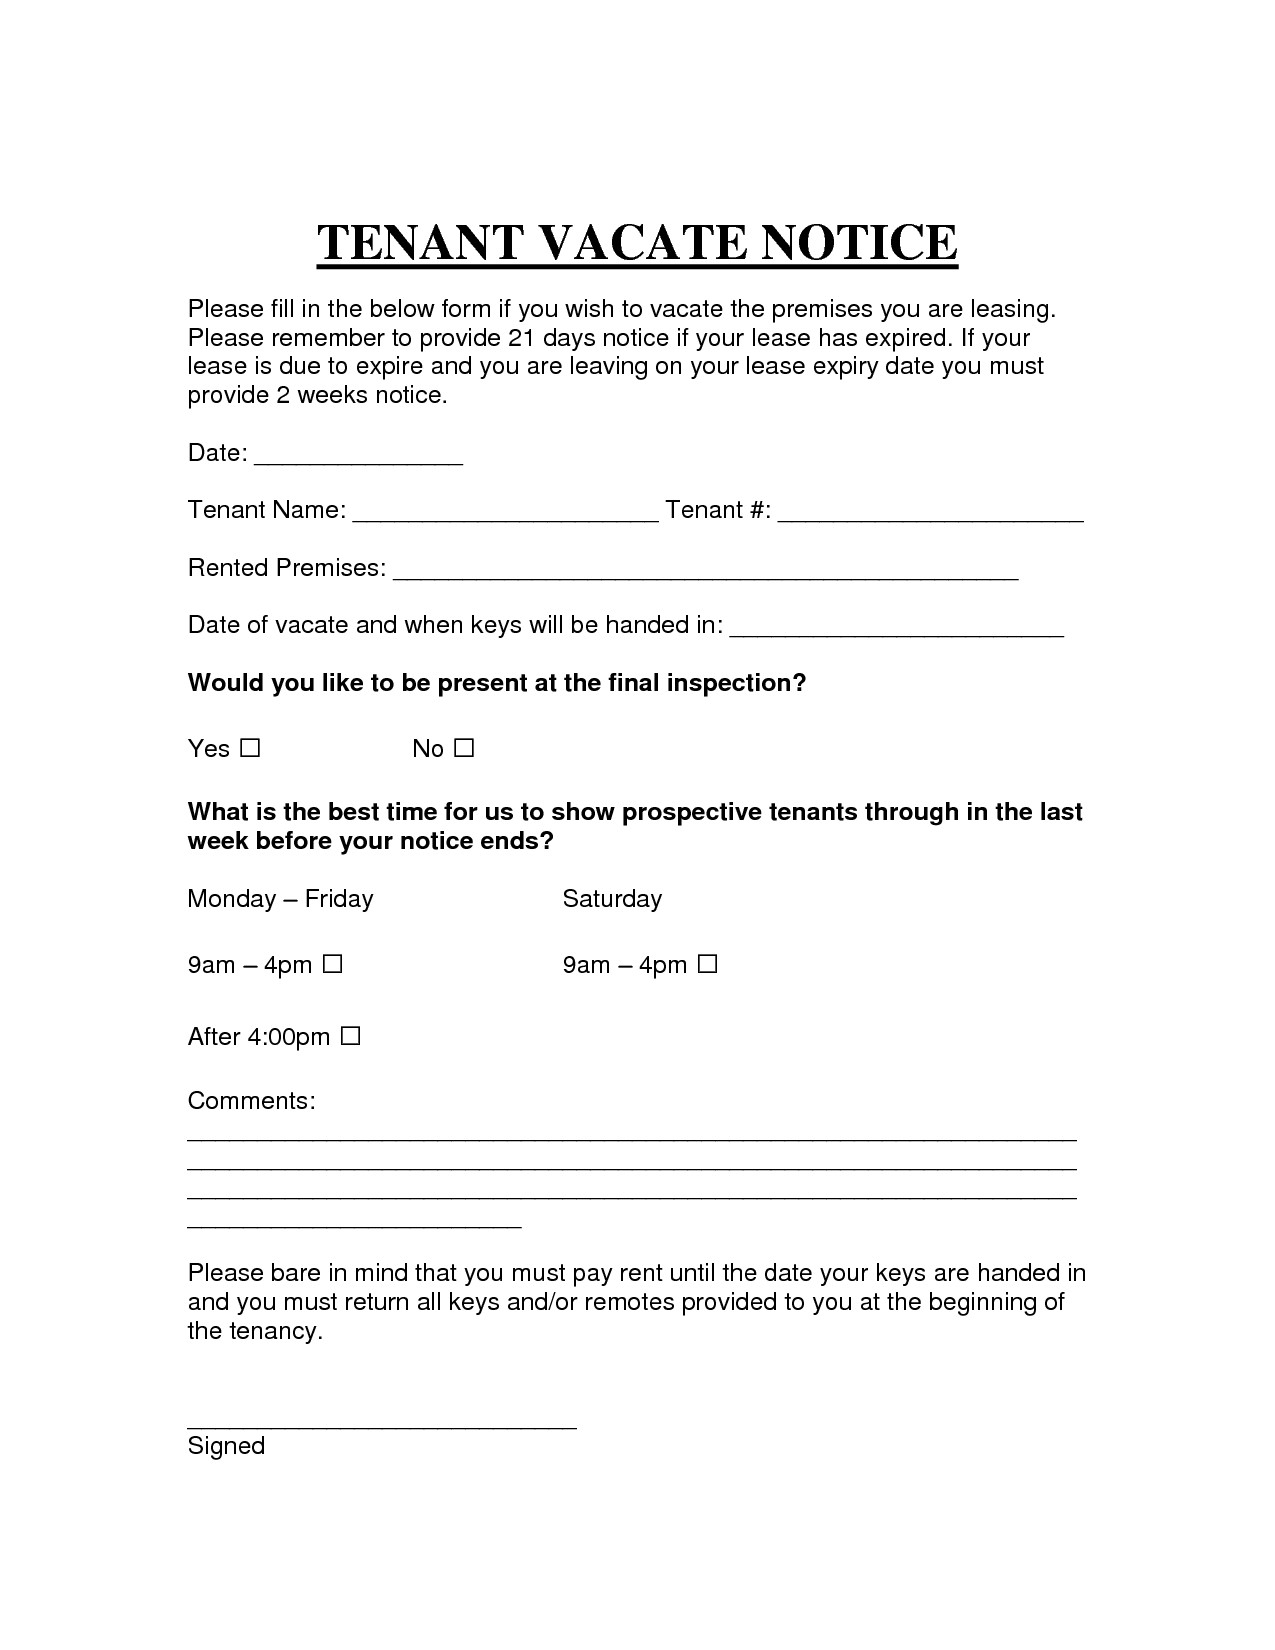 Notice Letter to Tenant From Landlord Template - Template Letter to Leave Property New Printable Sample Vacate Notice